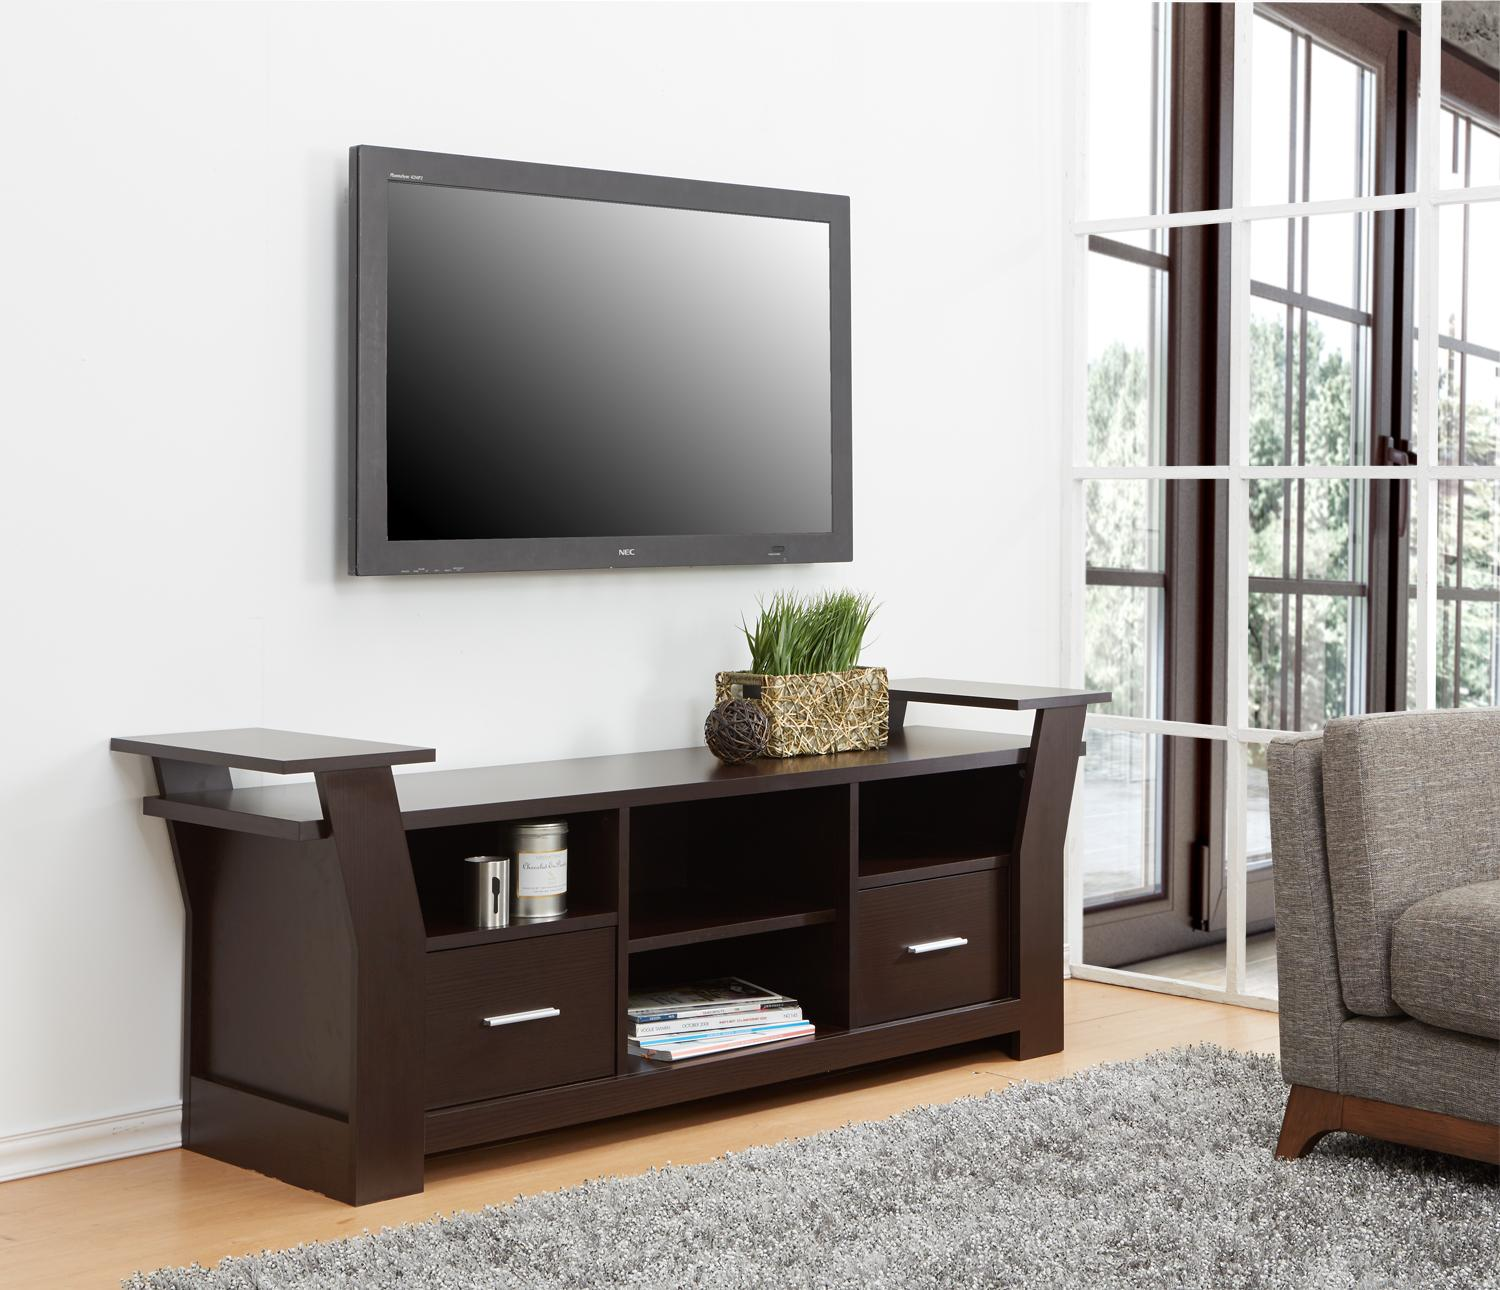 furniture of america enitial lab torena multistorage tv stand  - view larger